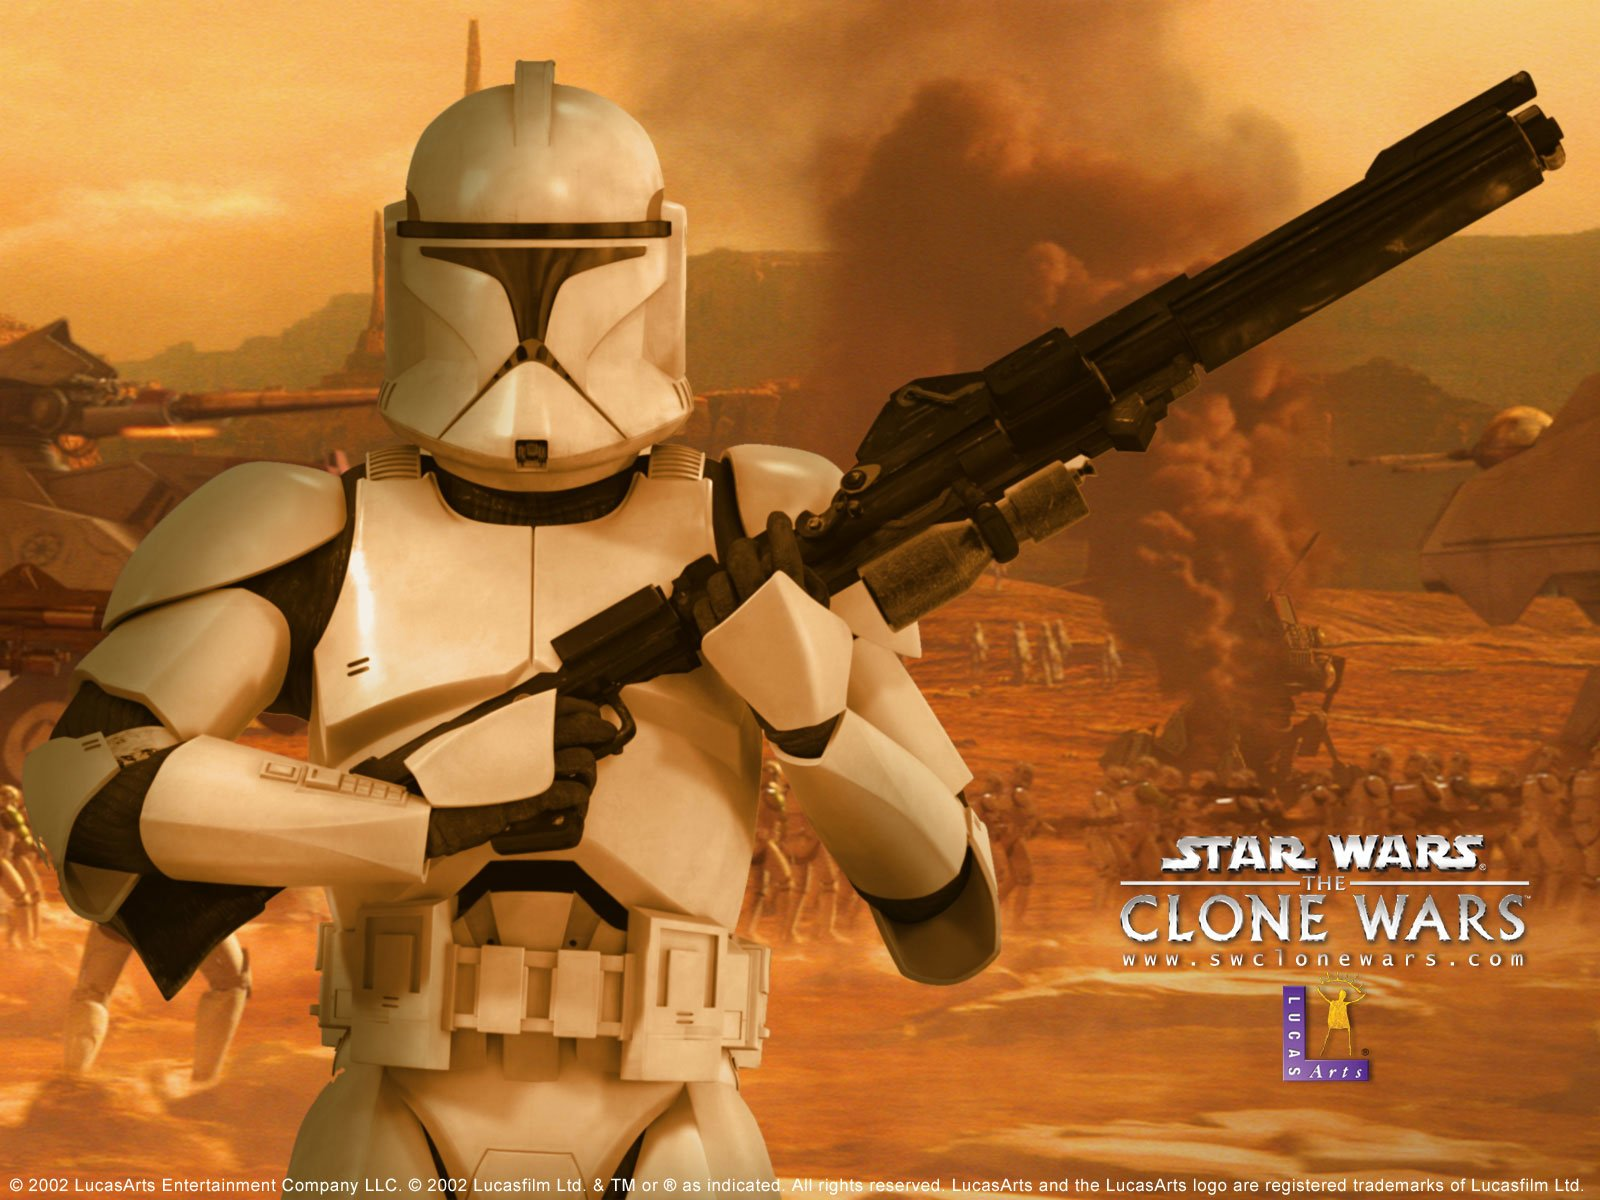 Star Wars The Clone Wars Wallpaper: Star Wars: The Clone Wars Wallpaper And Background Image